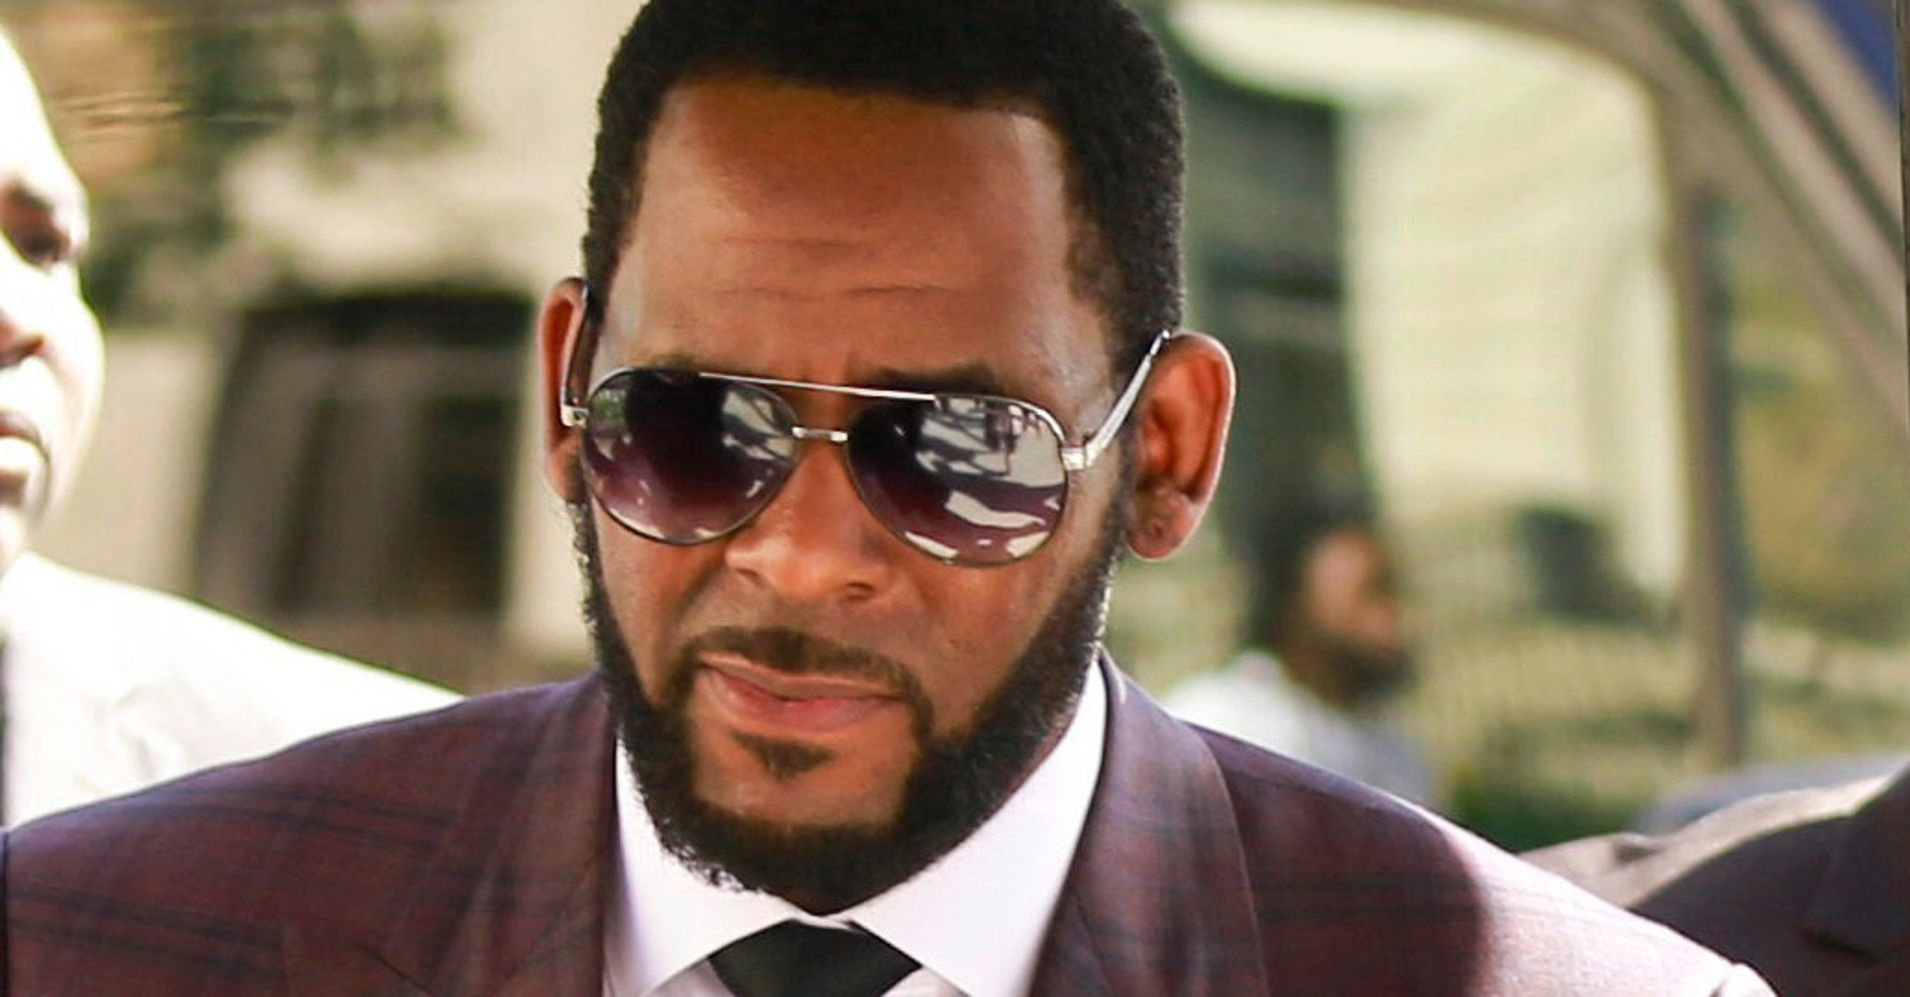 Westlake Legal Group 5d280361240000ff3493549b R. Kelly Arrested In Chicago On New Federal Sex Crime Charges